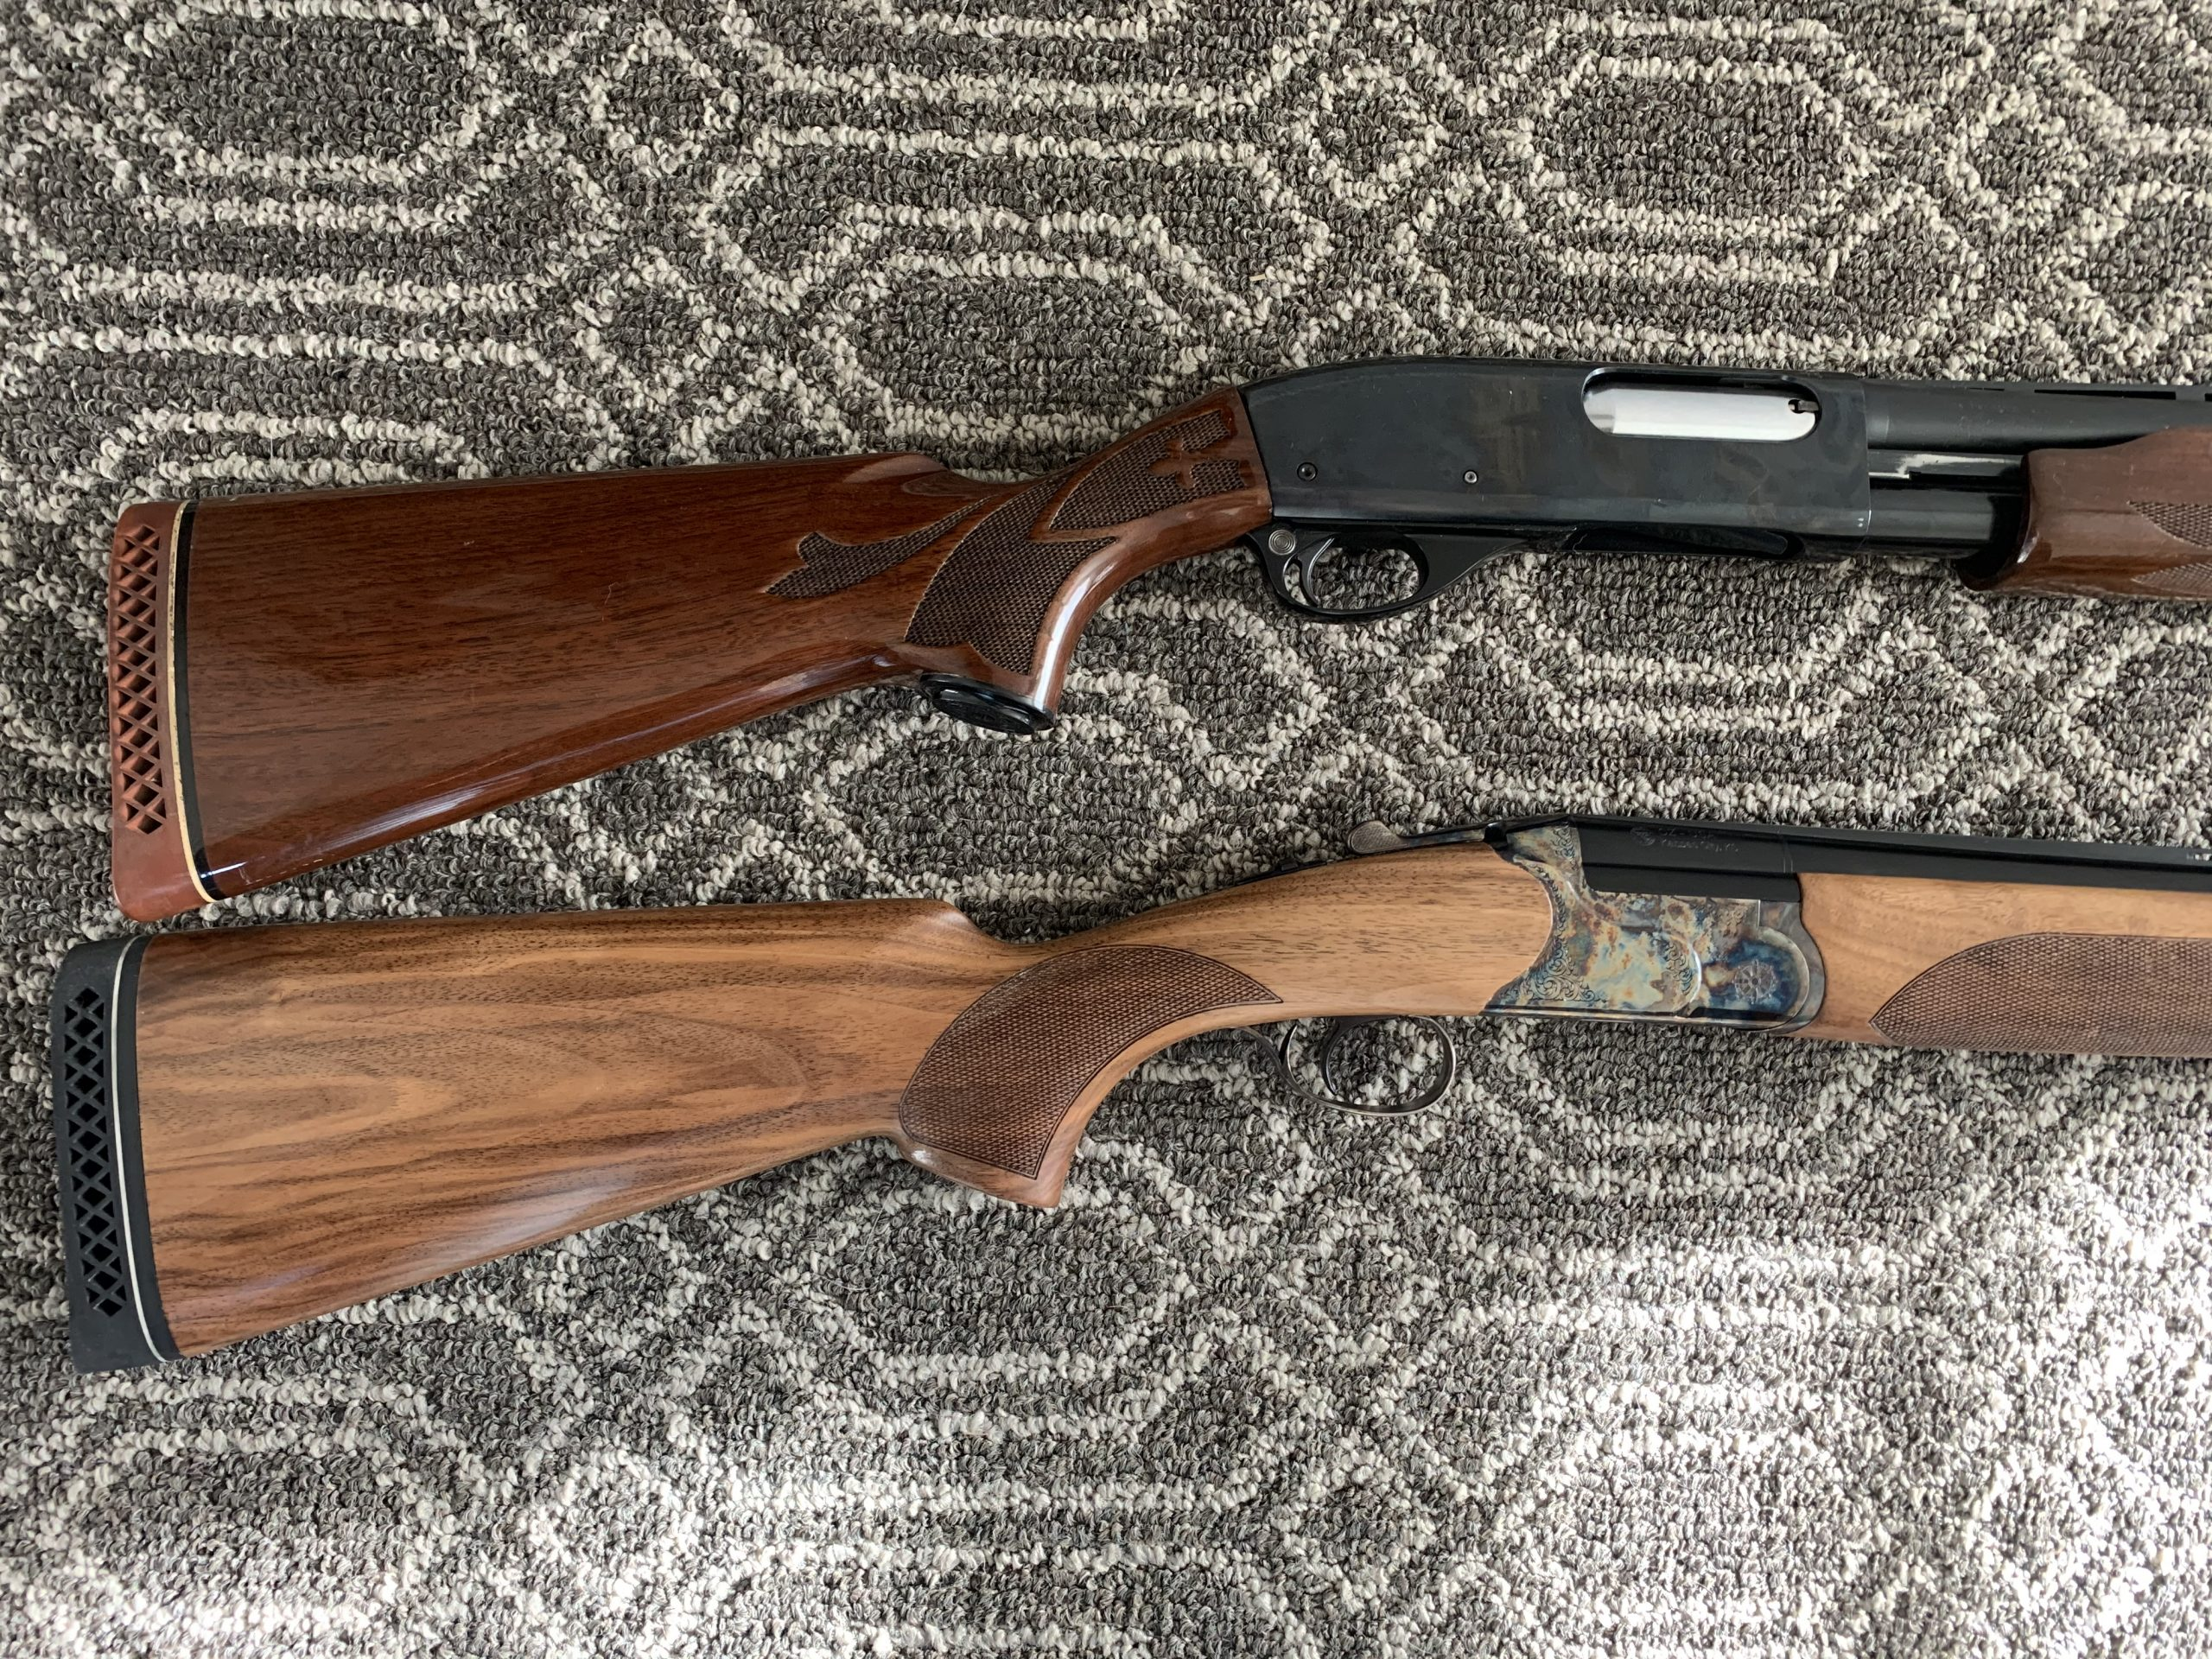 refinished cz woodcock g2 and a remington 760 wingmaster